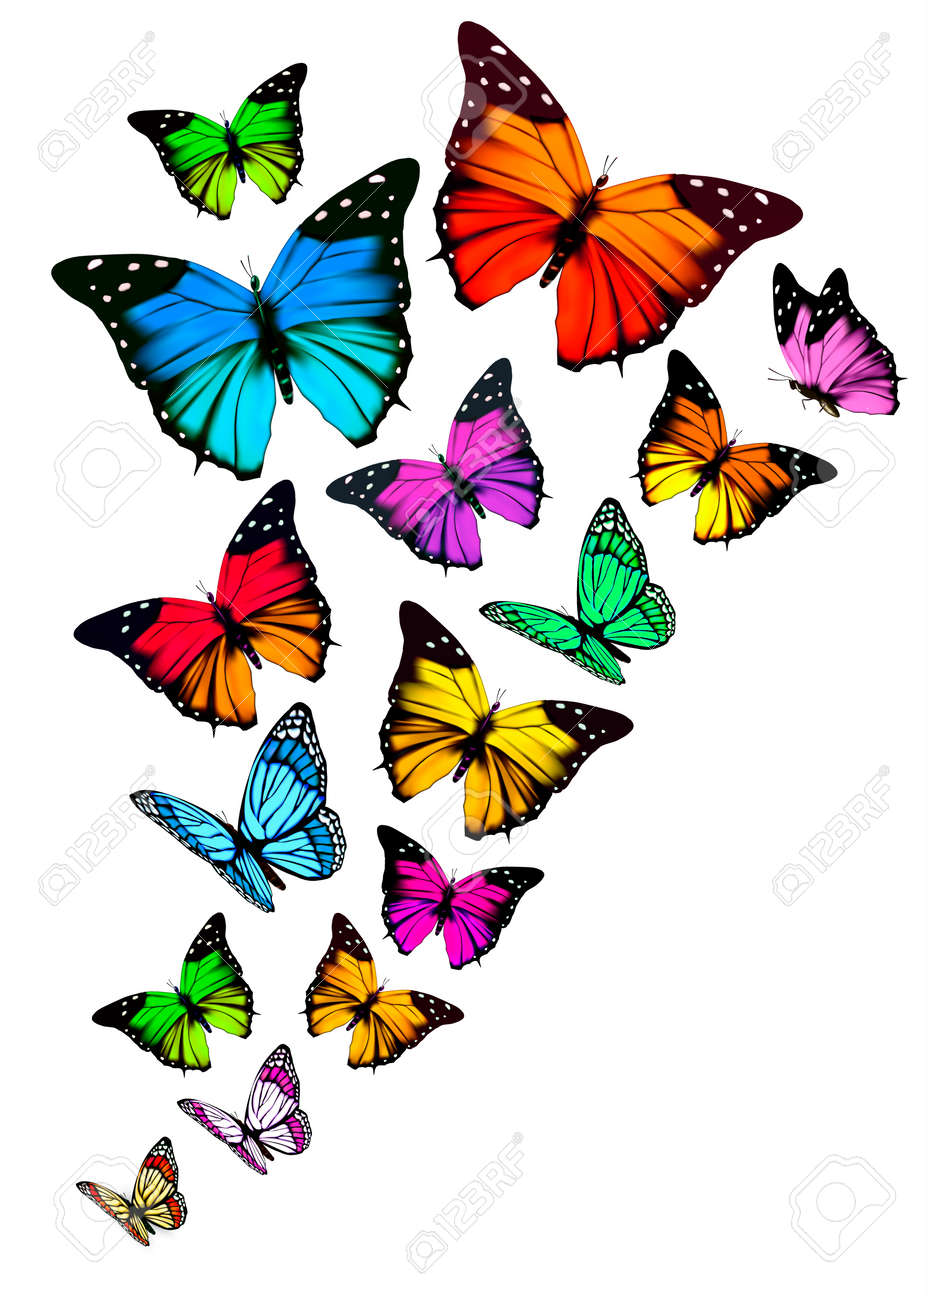 Background With Colorful Butterflies Vector Royalty Free Cliparts